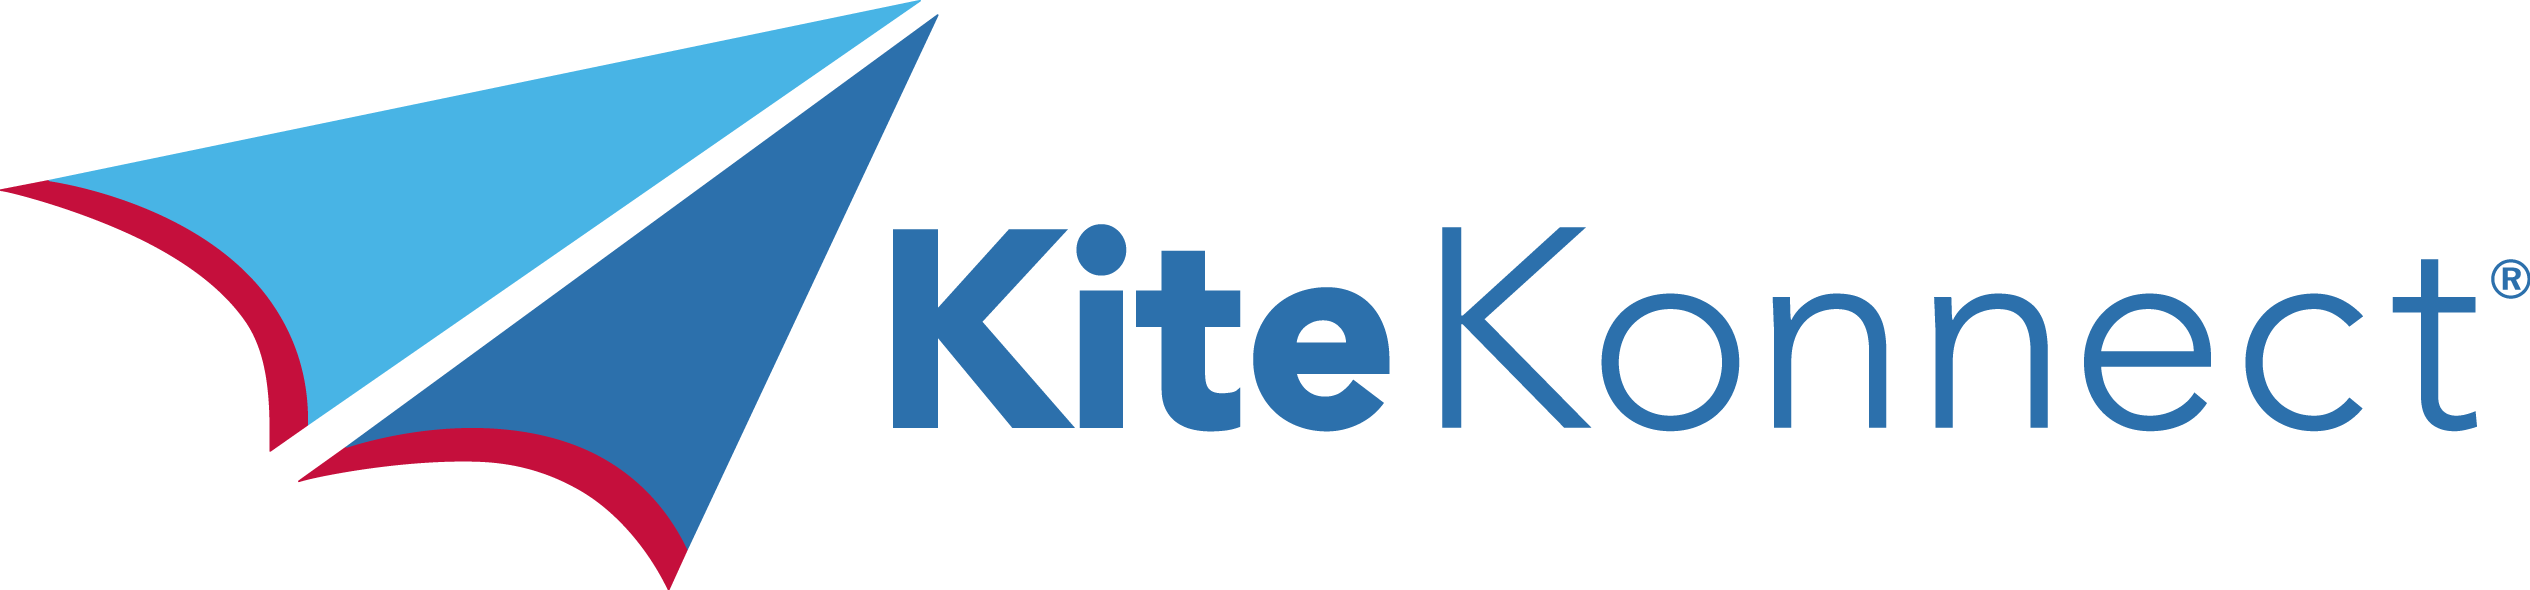 Visit the Kite Konnect Referral Portal to submit a Kite Konnect referral or for information and resources.